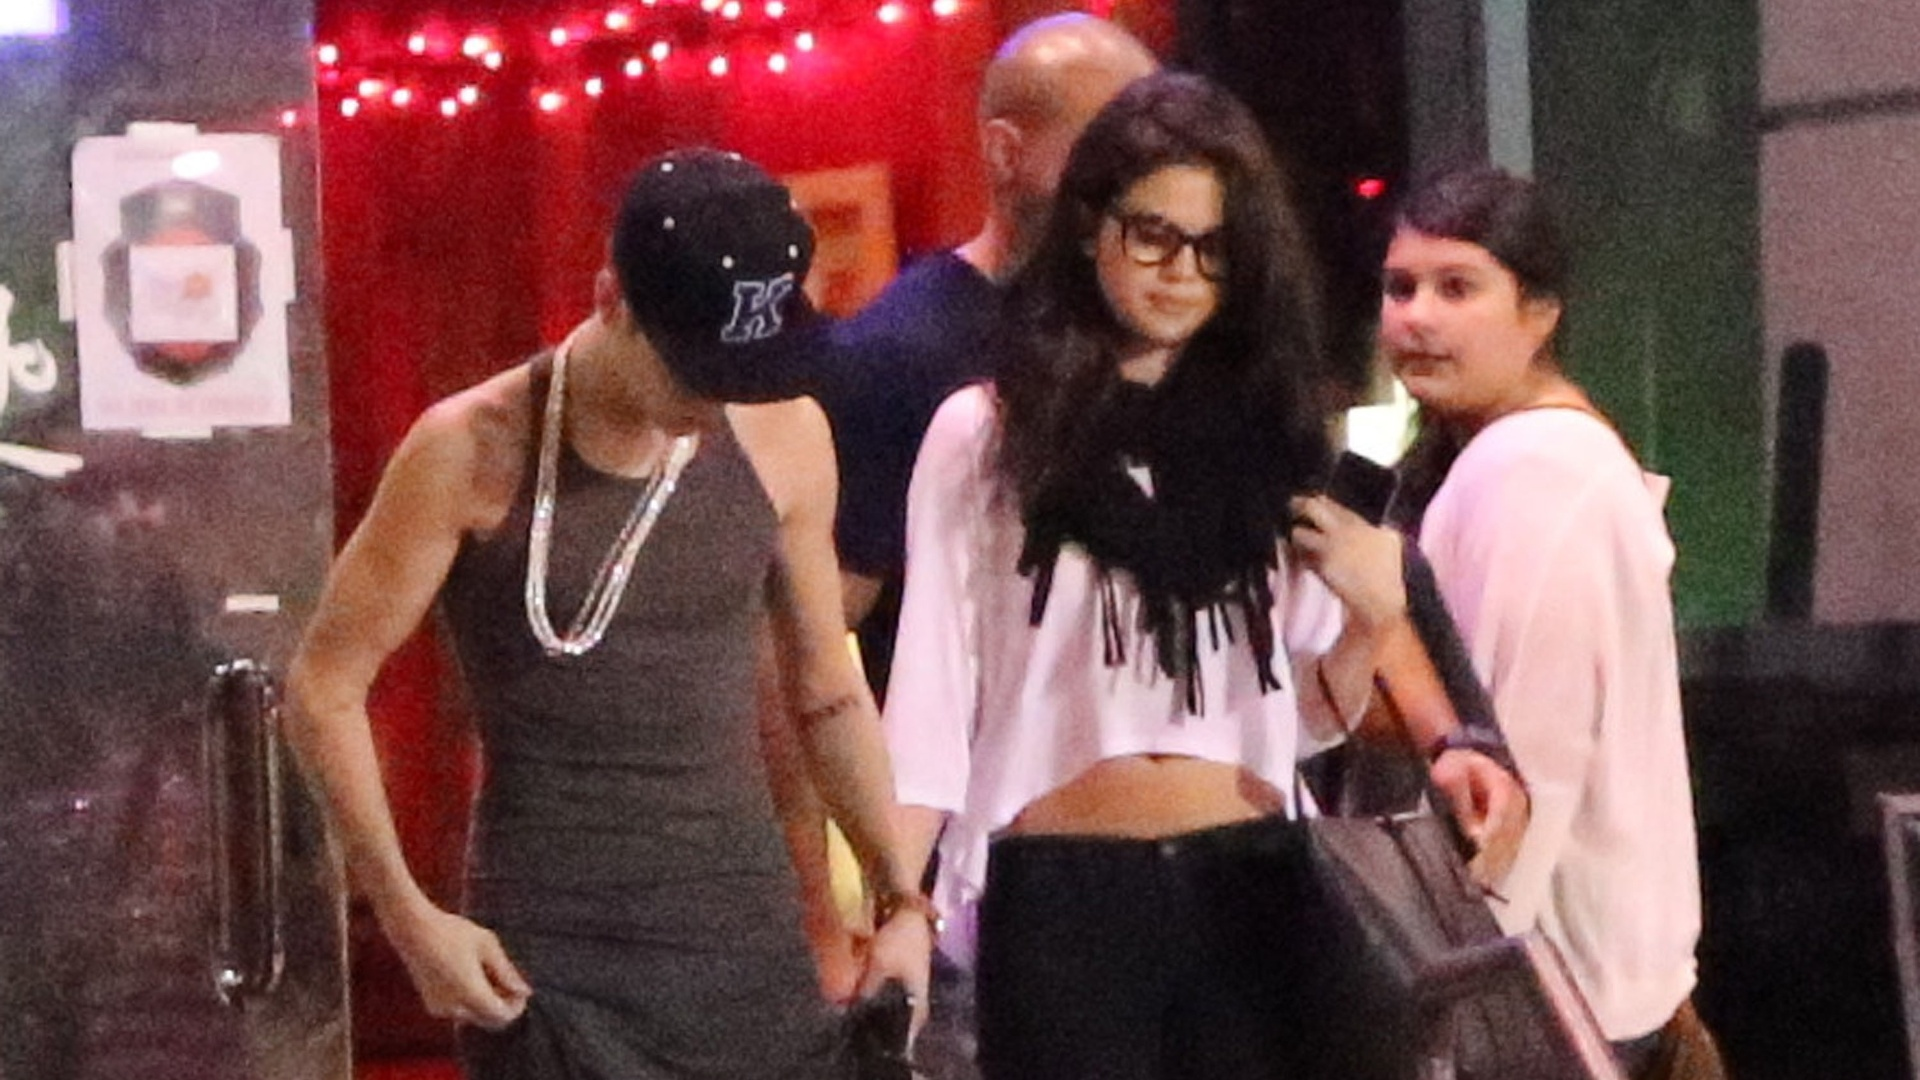 Justin Bieber e Selena Gomez saram para jantar em um restaurante na Califrnia (16/11/12). Os cantores que esto separados deixaram o local em carros separados. Ao chegar na residncia de Selena, Justin foi impedido de entrar e chegou a passar um tempo parado no porto